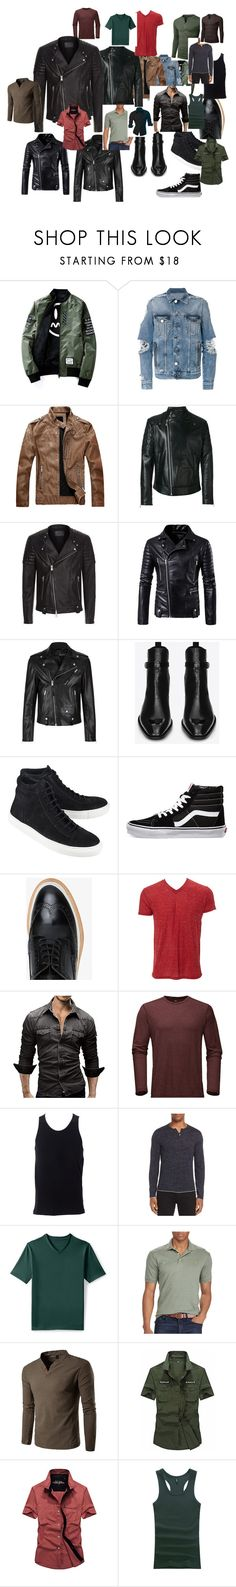 """test"" by ekaterinaromakina on Polyvore featuring Balmain, Versace, AllSaints, Alexander McQueen, Yves Saint Laurent, The Last conspiracy, Vans, WeberHodelFeder, Simplex Apparel и The North Face"